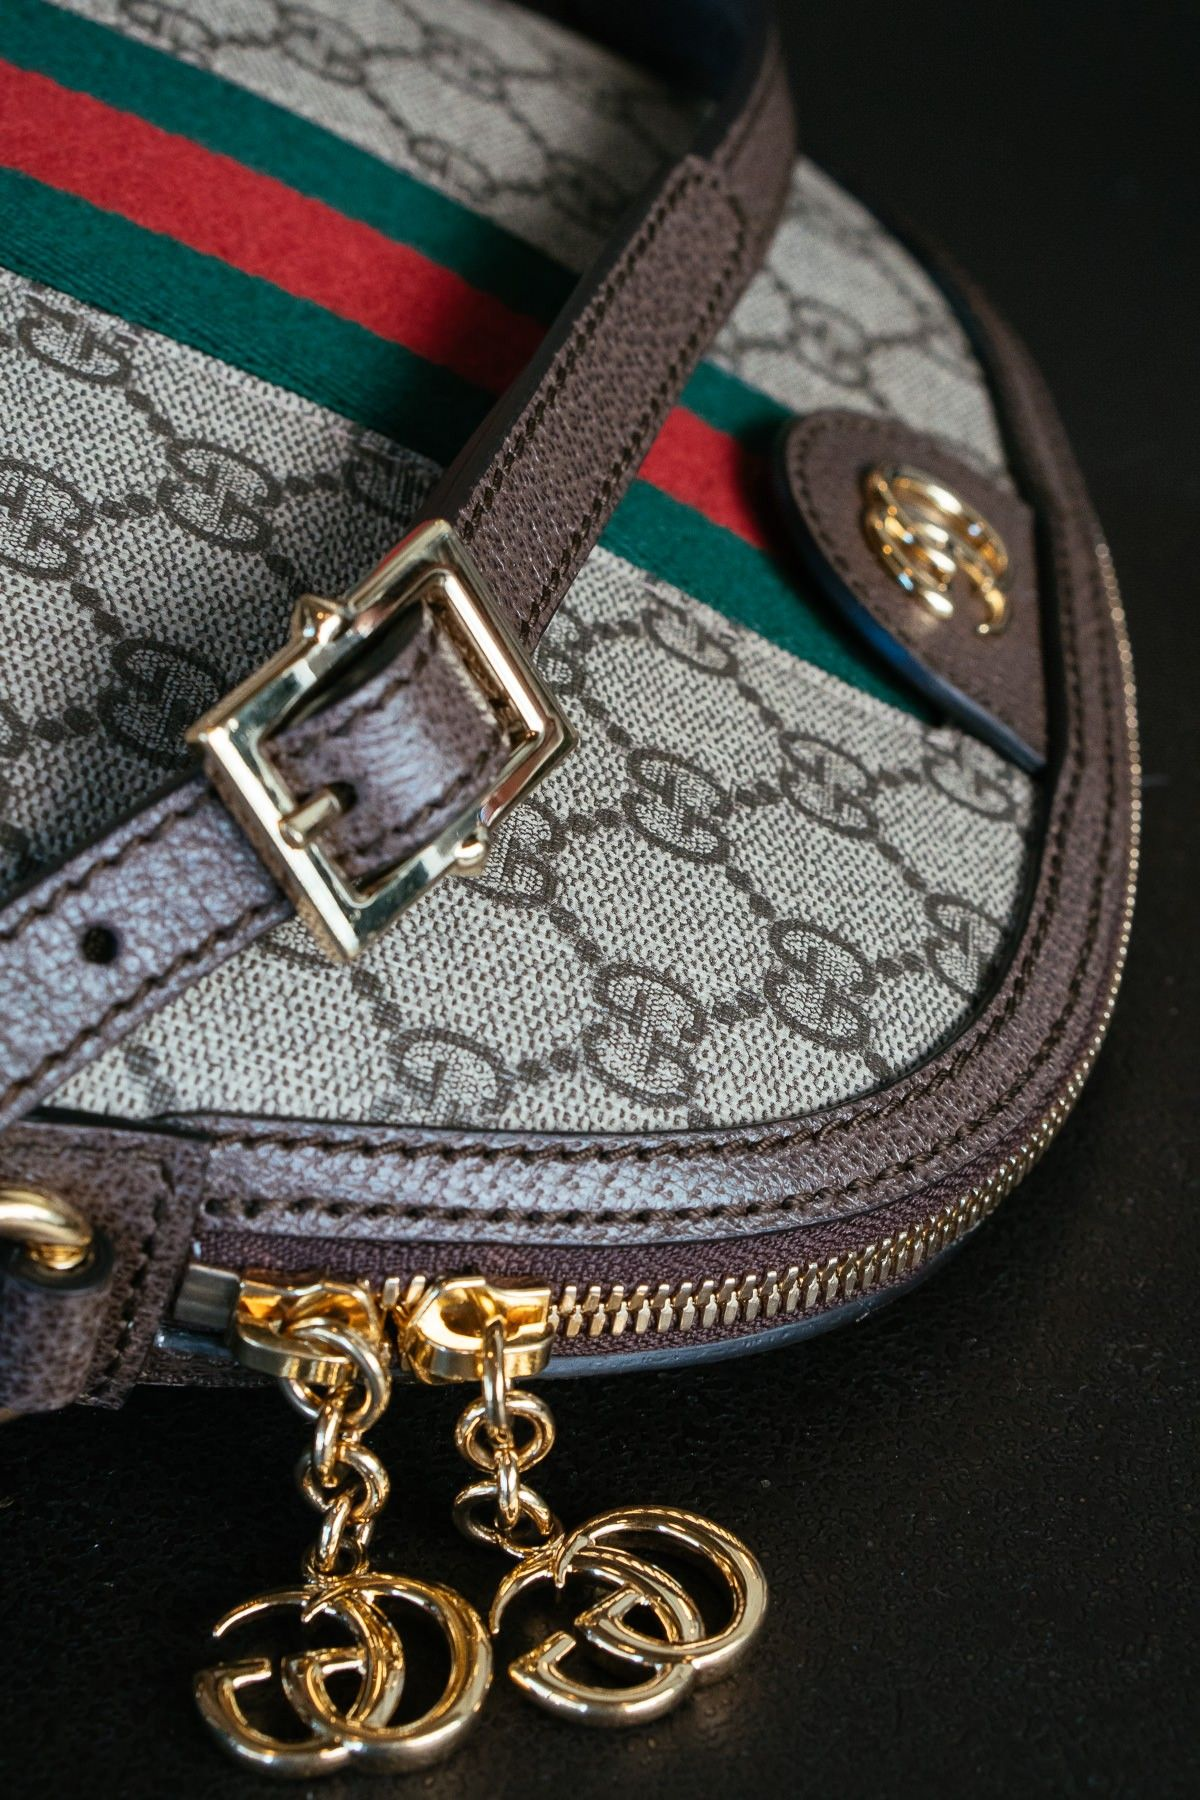 00fdc73af0c6 Gucci Ophidia GG Small Shoulder Bag | Bags | Bags, Gucci brand ...